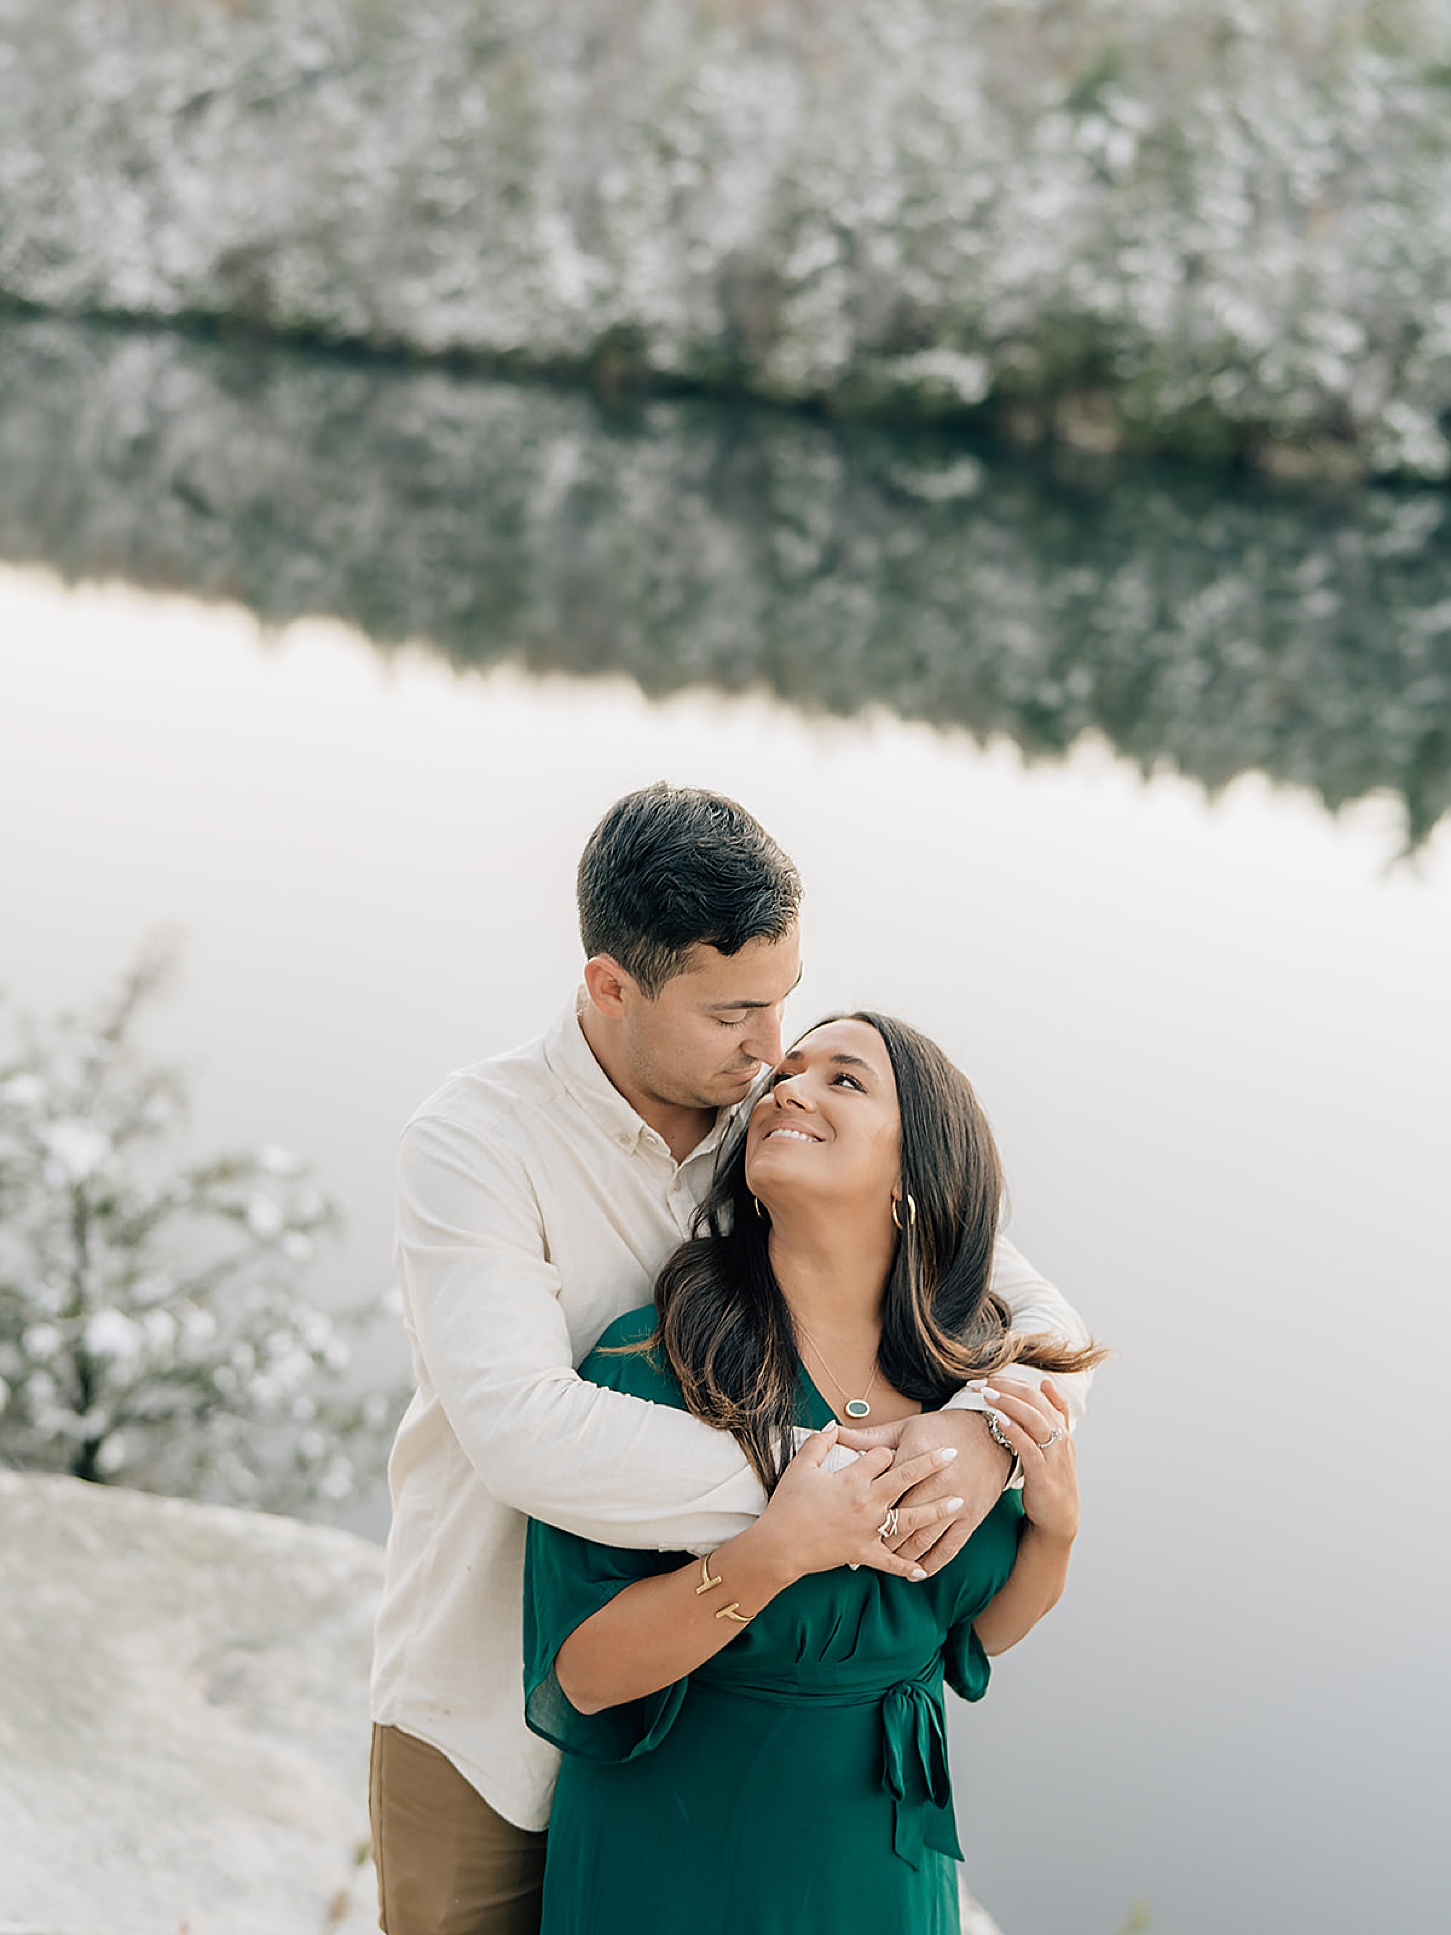 Vermont Destination Engagement Photography by Magdalena Studios 0014